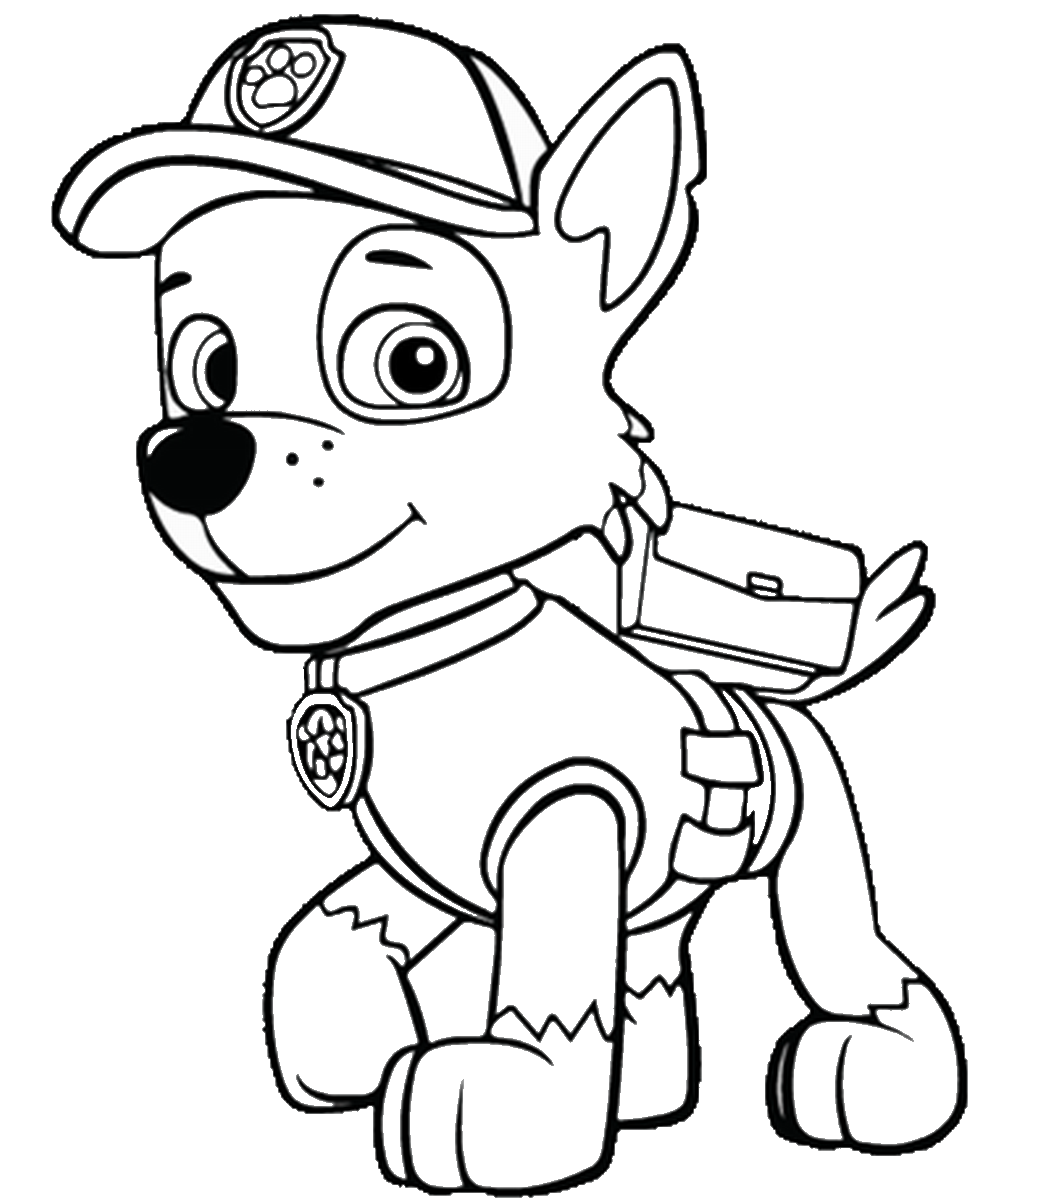 paw patrol coloring pages everest paw patrol coloring lesson kids coloring page pages paw patrol coloring